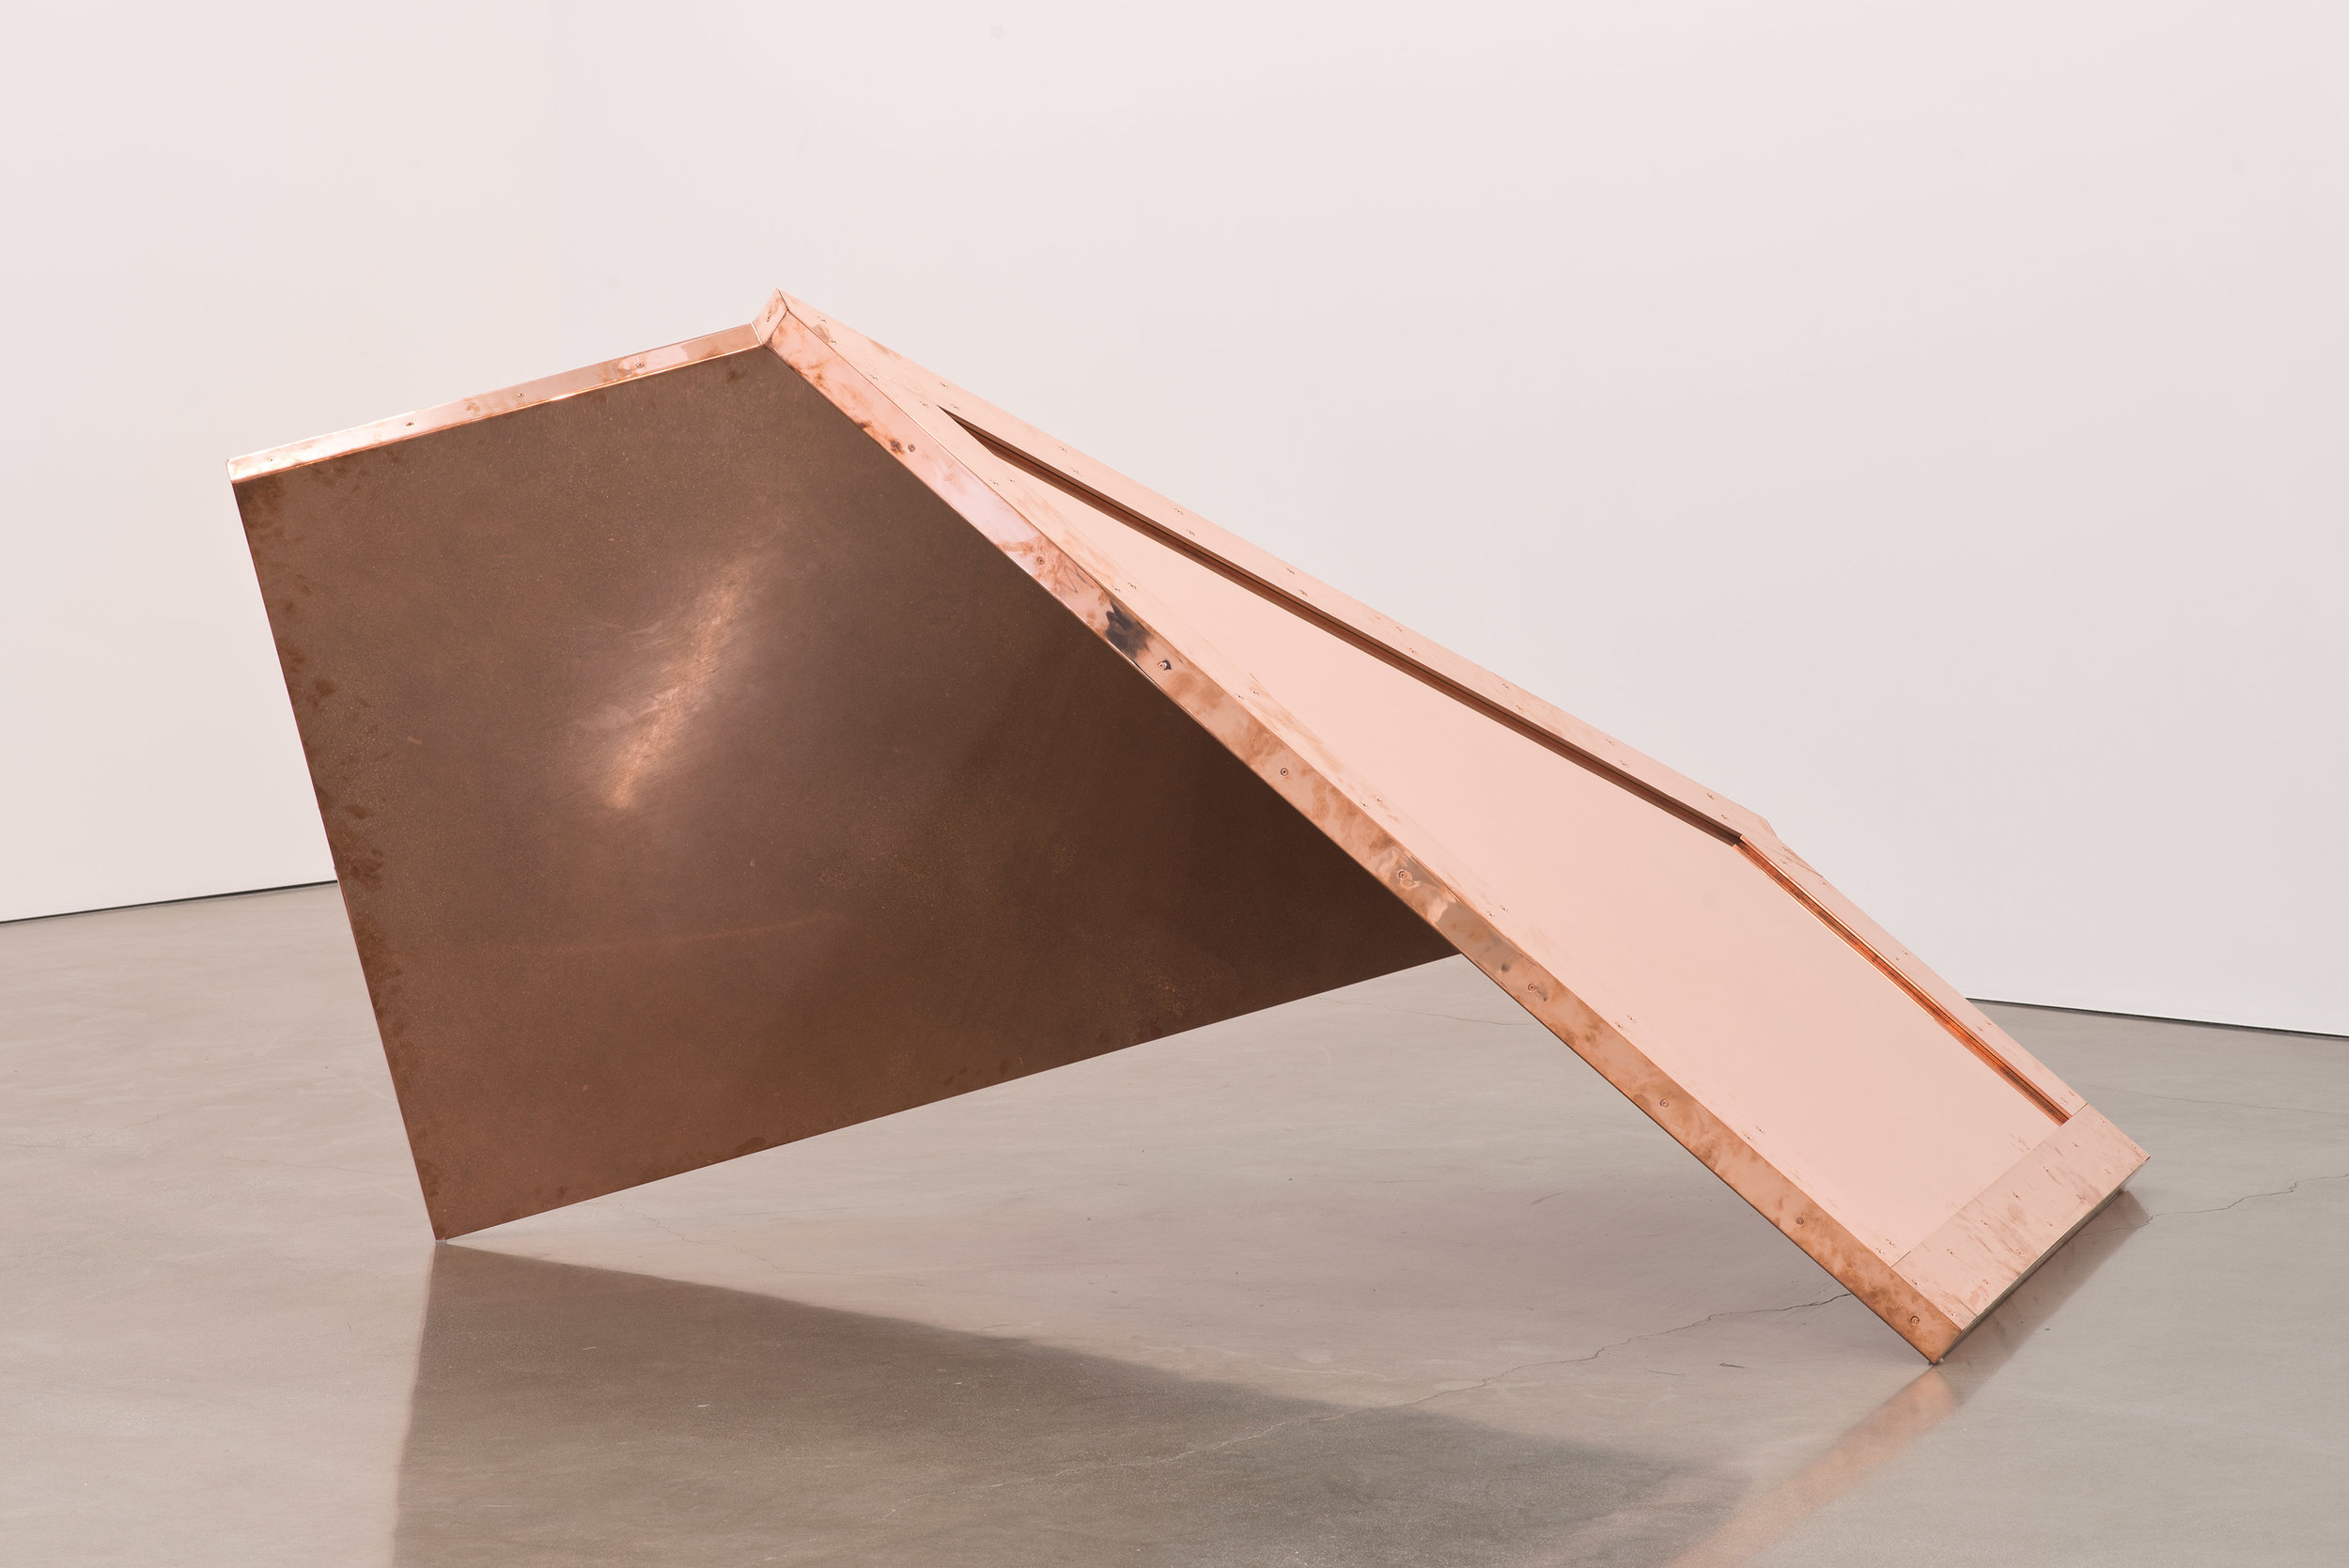 """Copper Surrogate (60"""" x 120"""" 48 ounce C11000 Copper Alloy, 90º Bend, 77 3/4"""" 135º Antidiagonal / 45º Diagonal Bisection: February 19-21/April 5, 2014, Los Angeles, California)   2014  Polished copper  110 x 60 x 50 inches   Surrogates (Full Sheet, Art Handling), 2011–    Selected Bodies of Work, 2014"""